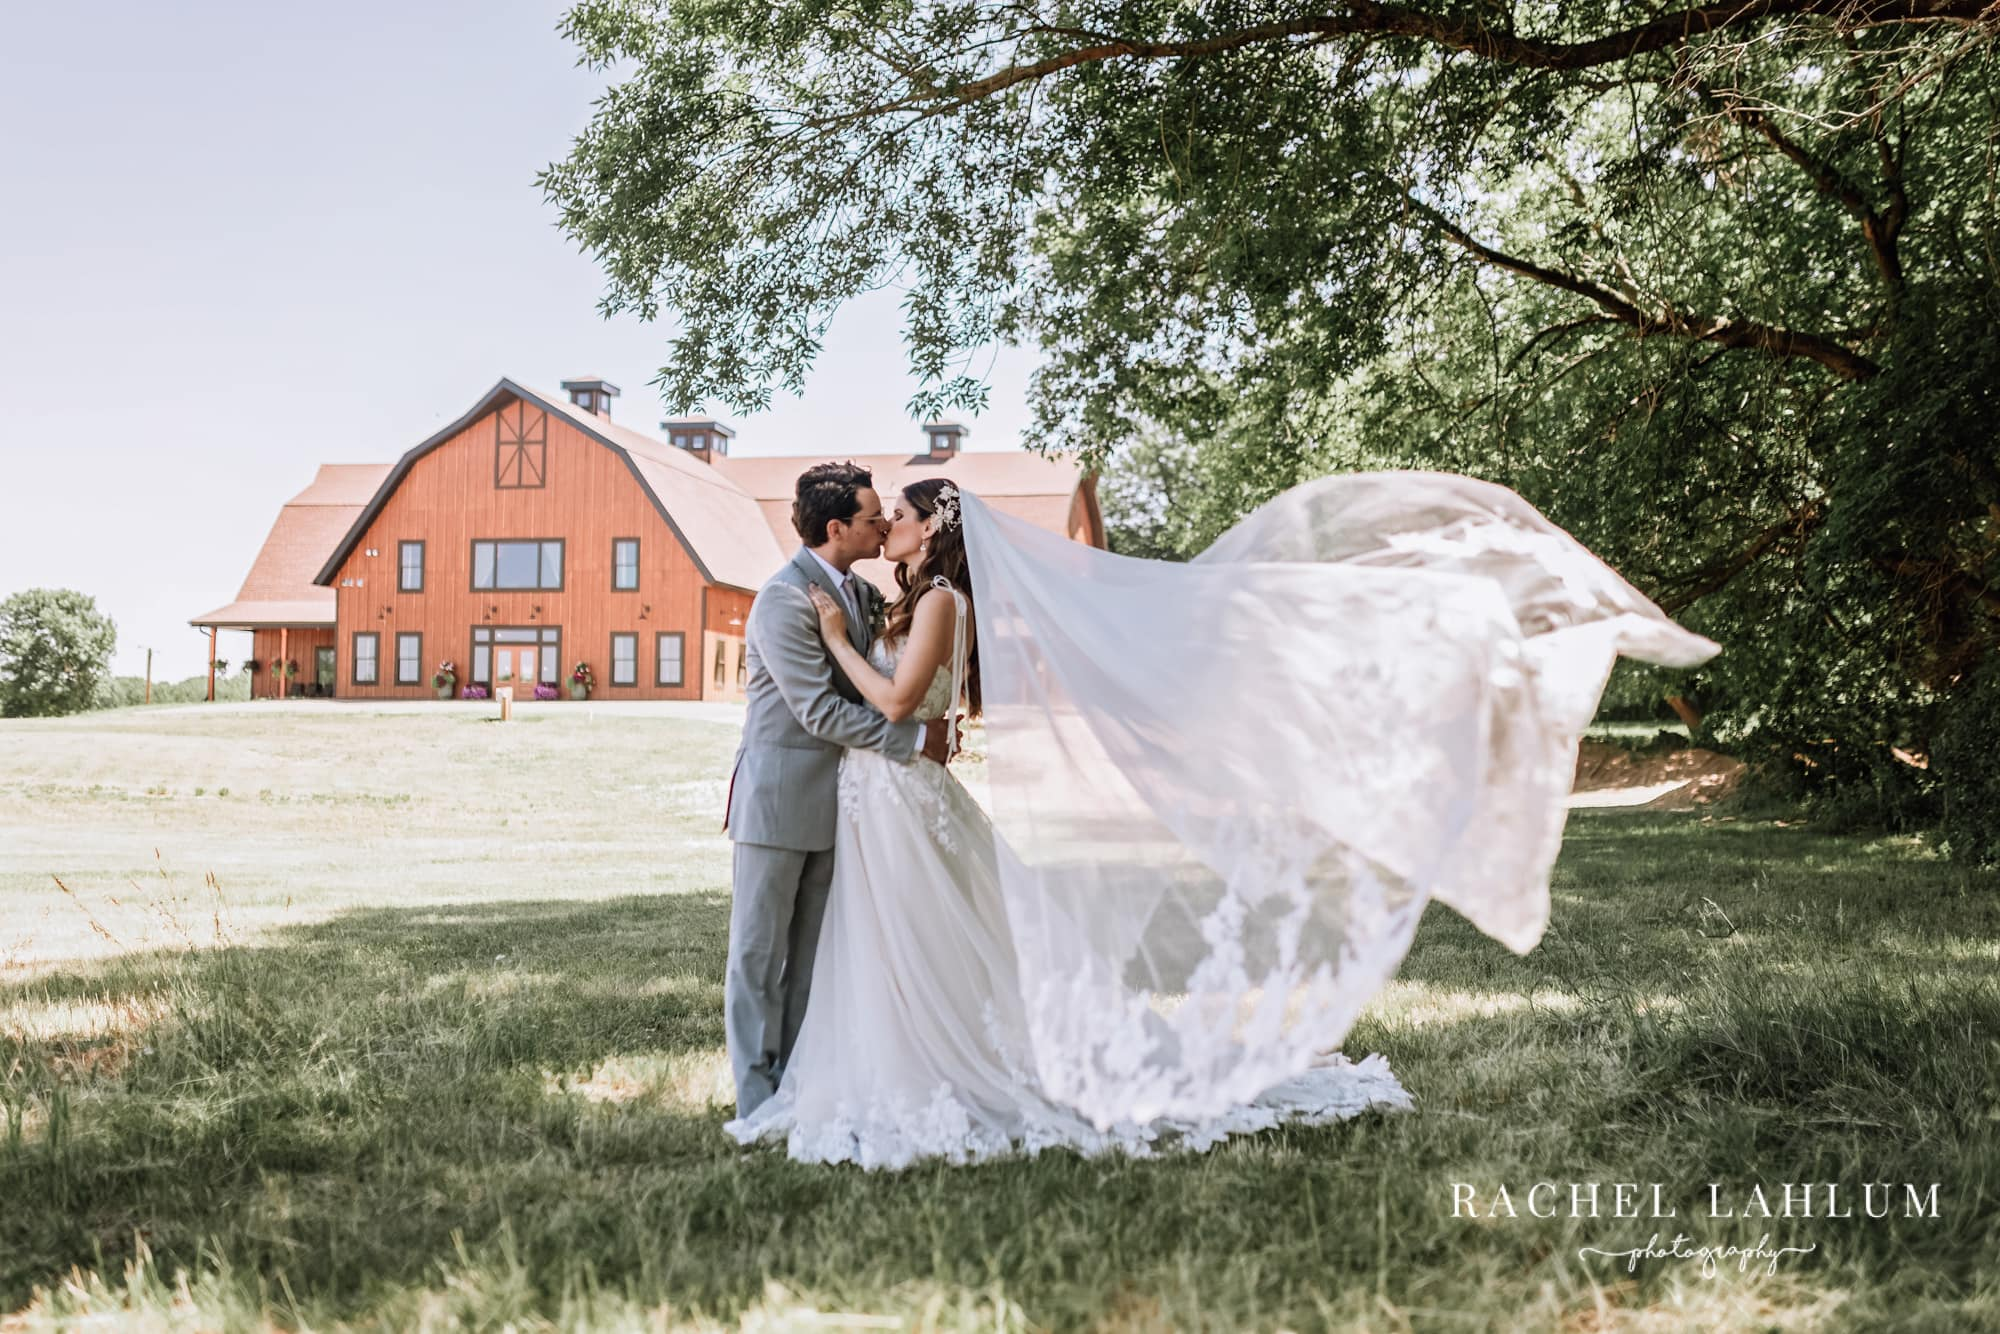 Bride and groom kiss in front of Circle B Ranch at styled wedding photography shoot in Isanti, Minnesota.